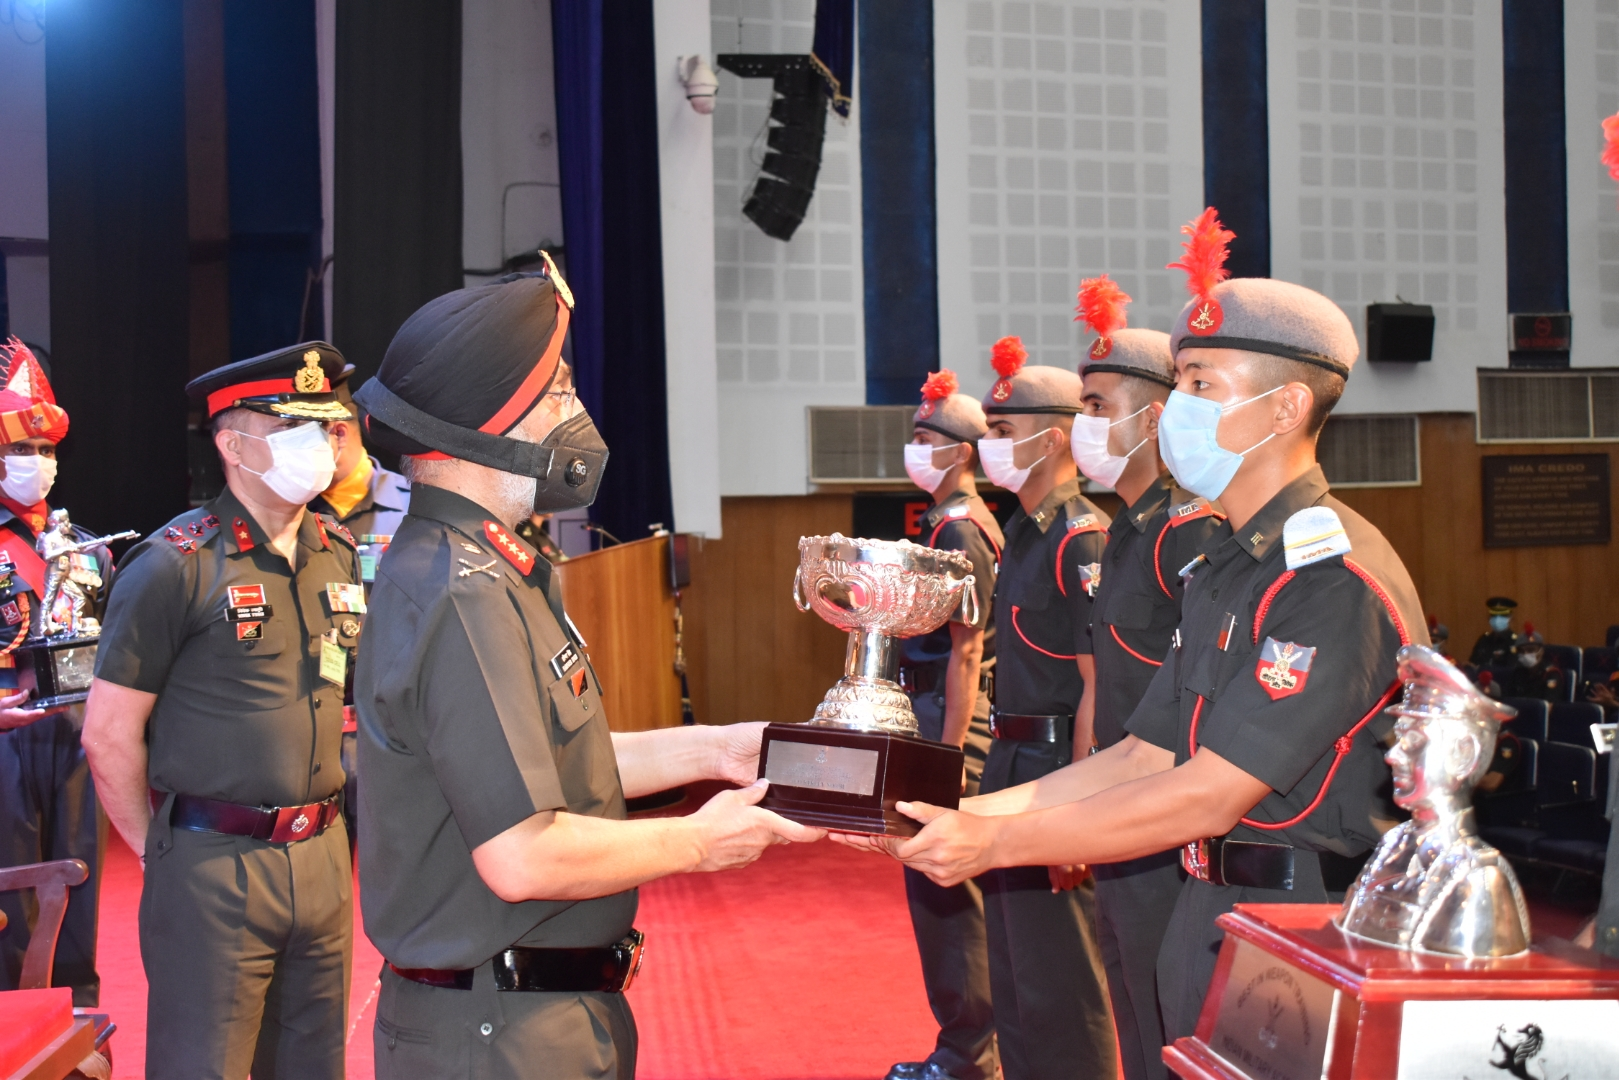 GENTLEMAN CADET FROM BHUTAN AWARDED THE PRESTIGIOUS MOTIVATIONAL TROPHY AT THE INDIAN MILITARY ACADEMY